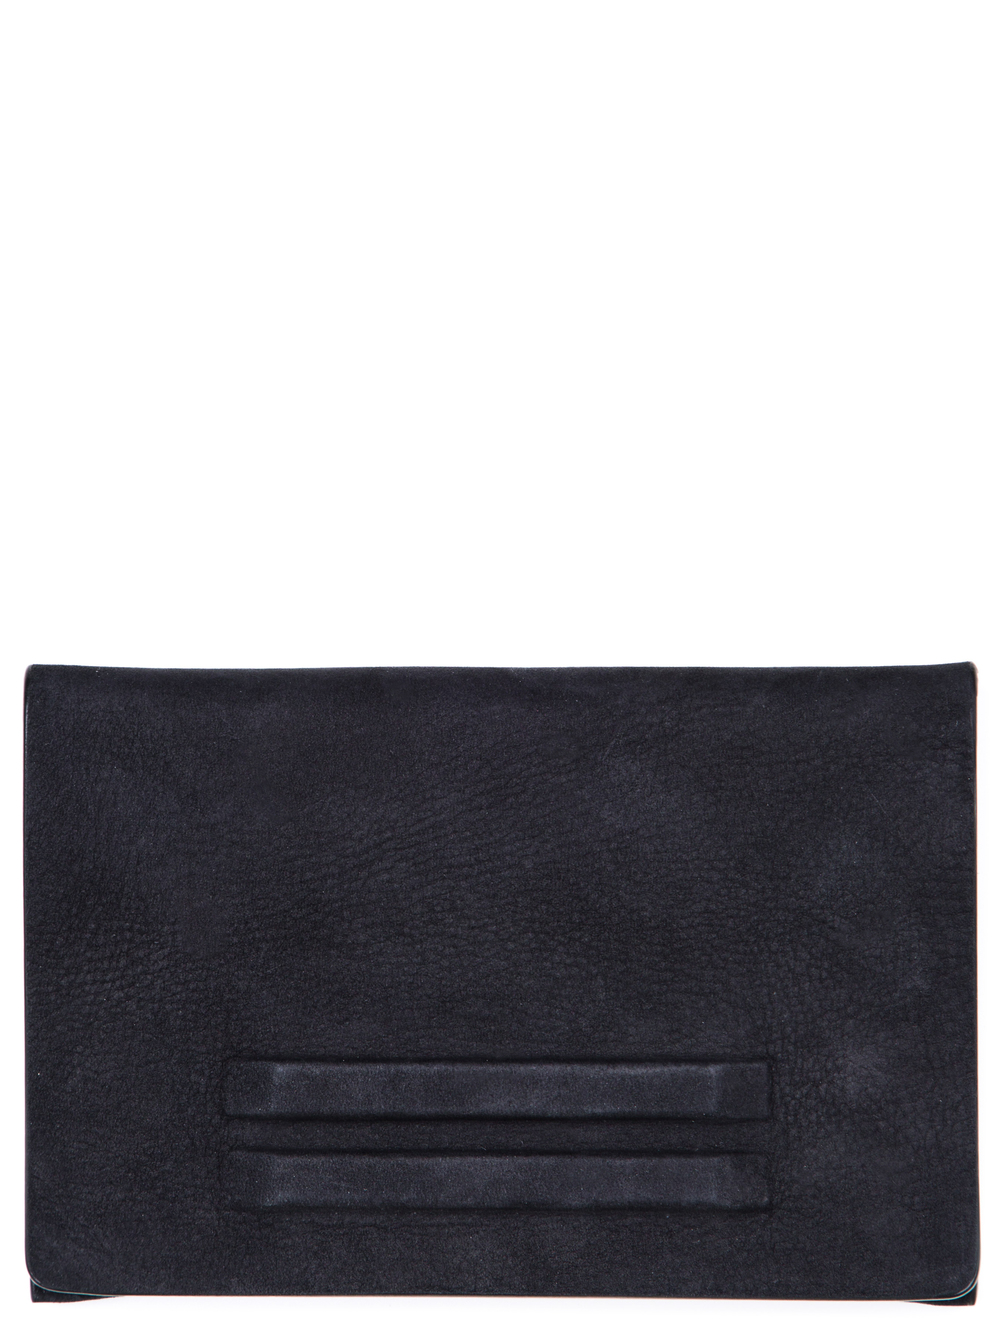 RICK OWENS FLAT WALLET SMALL IN BLACK CALF LEATHER